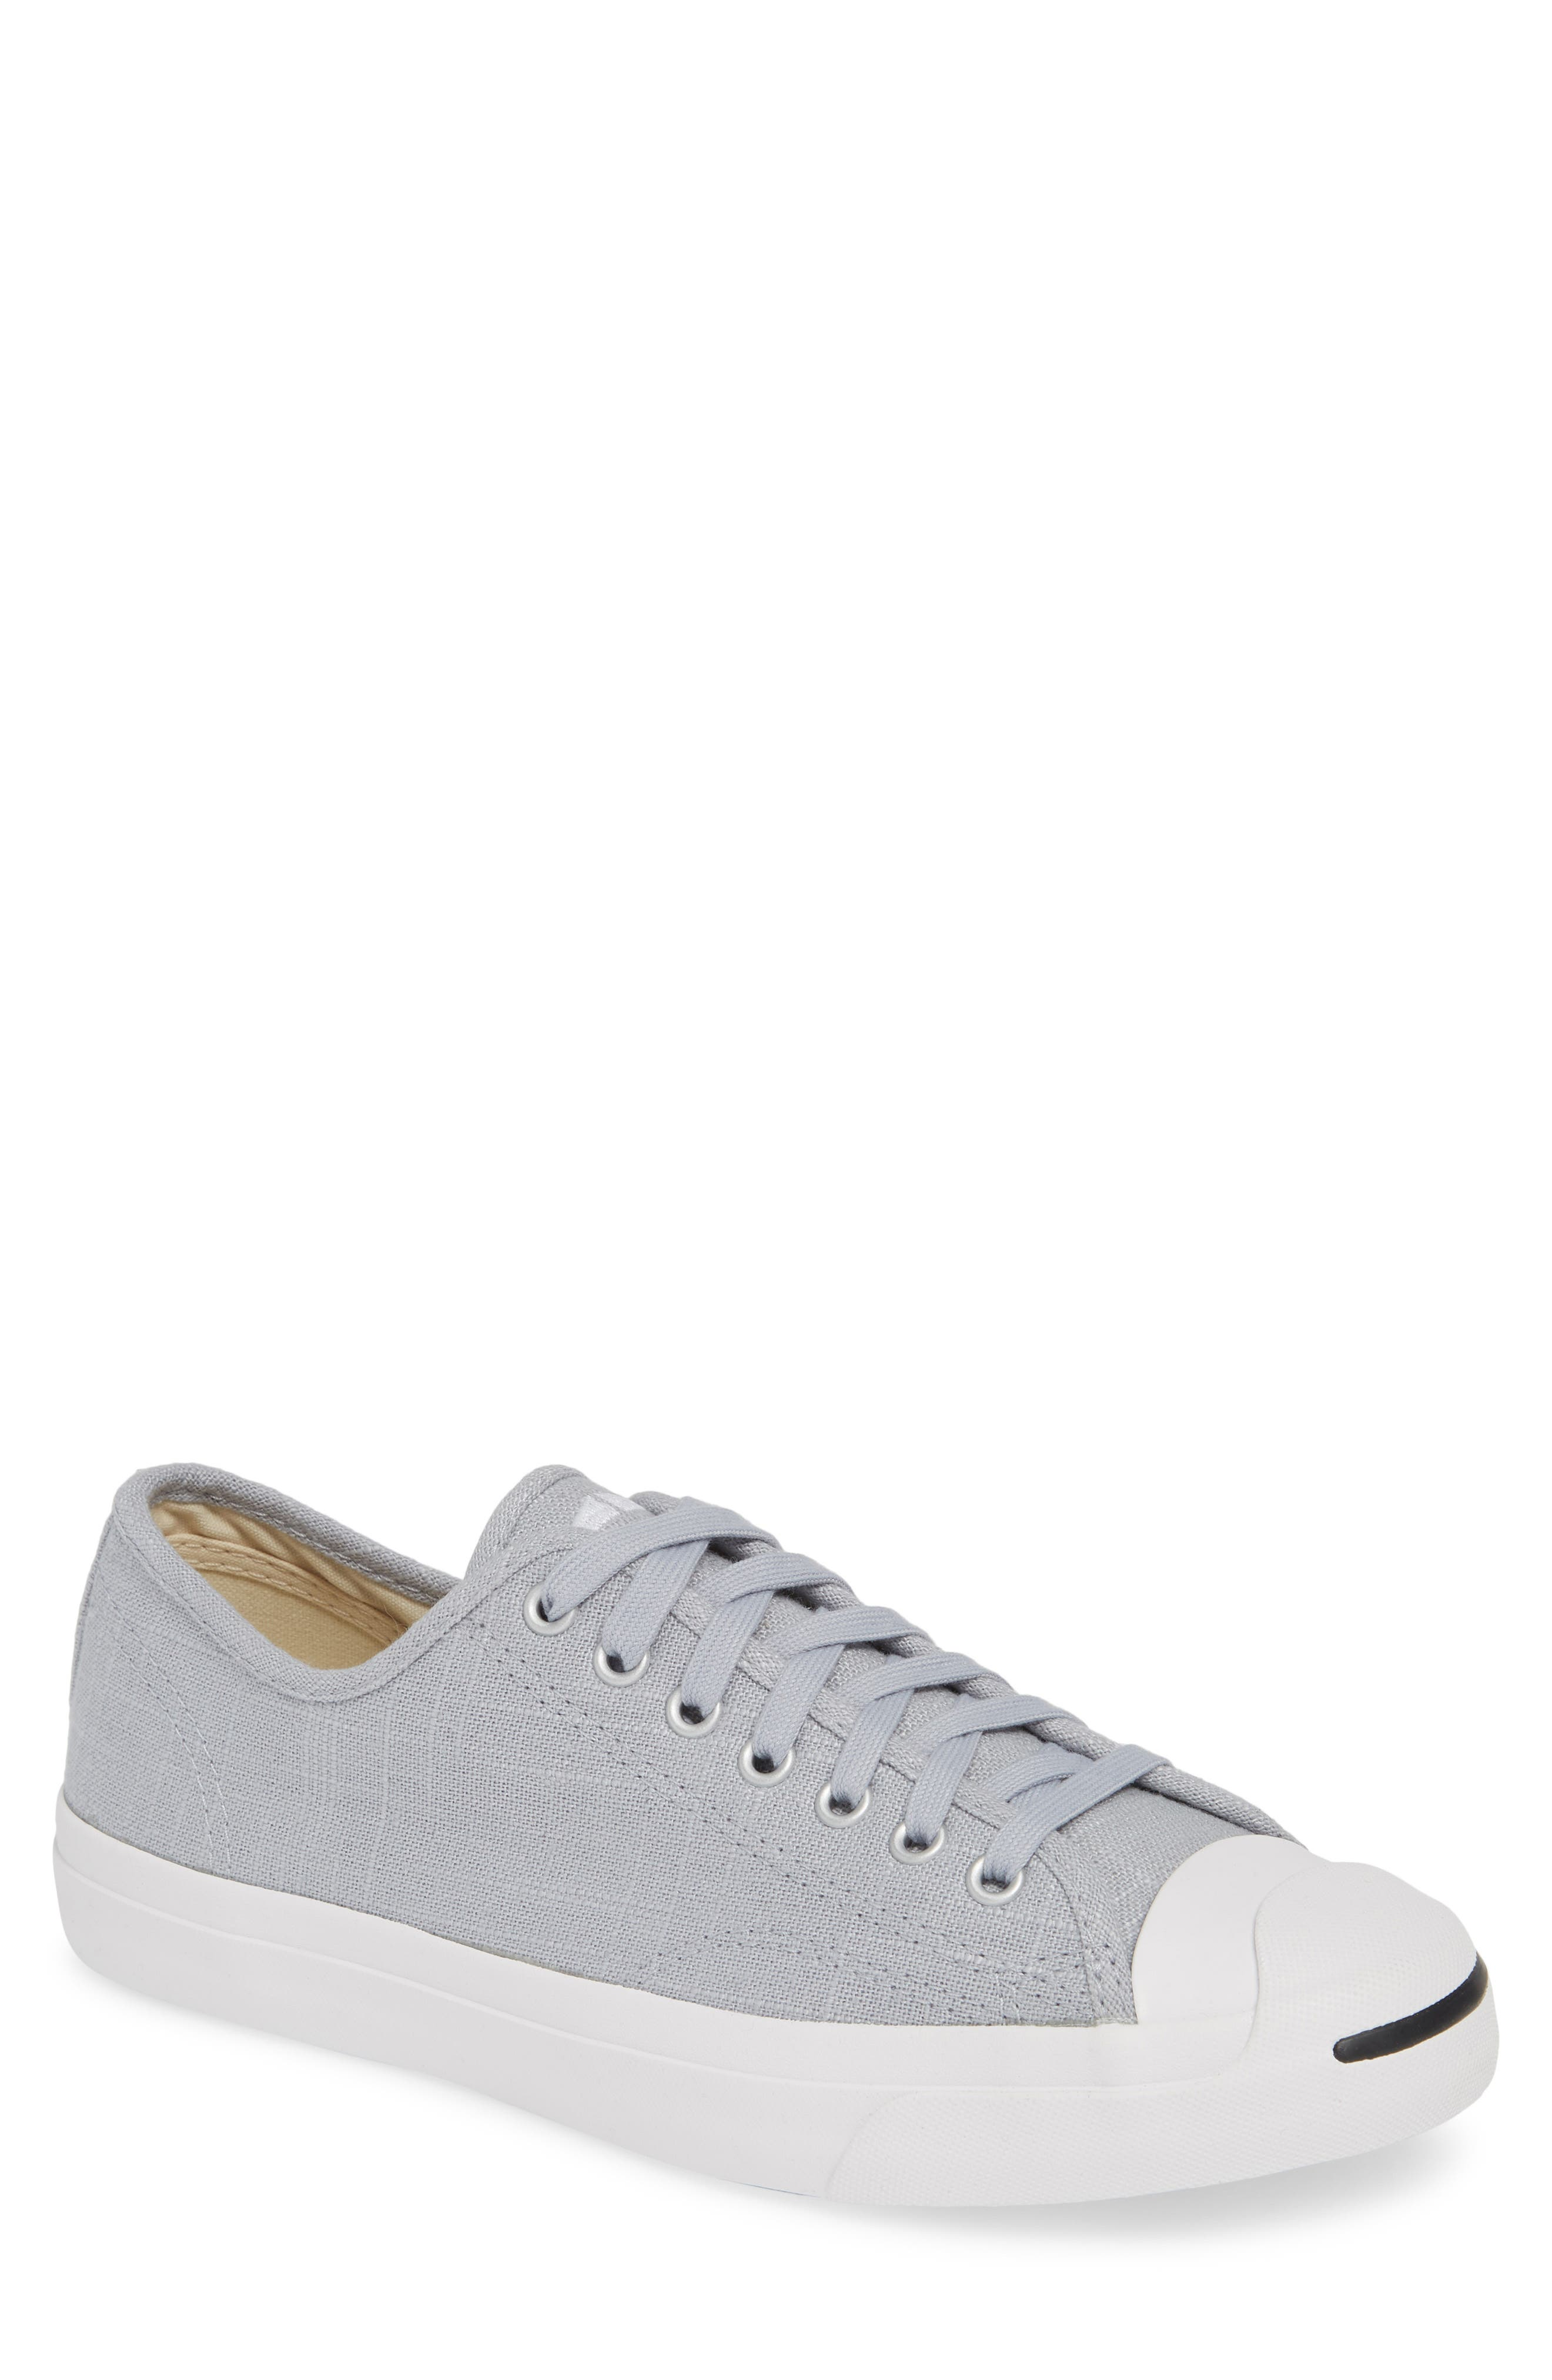 1cd537f67b5bd2 Converse Jack Purcell